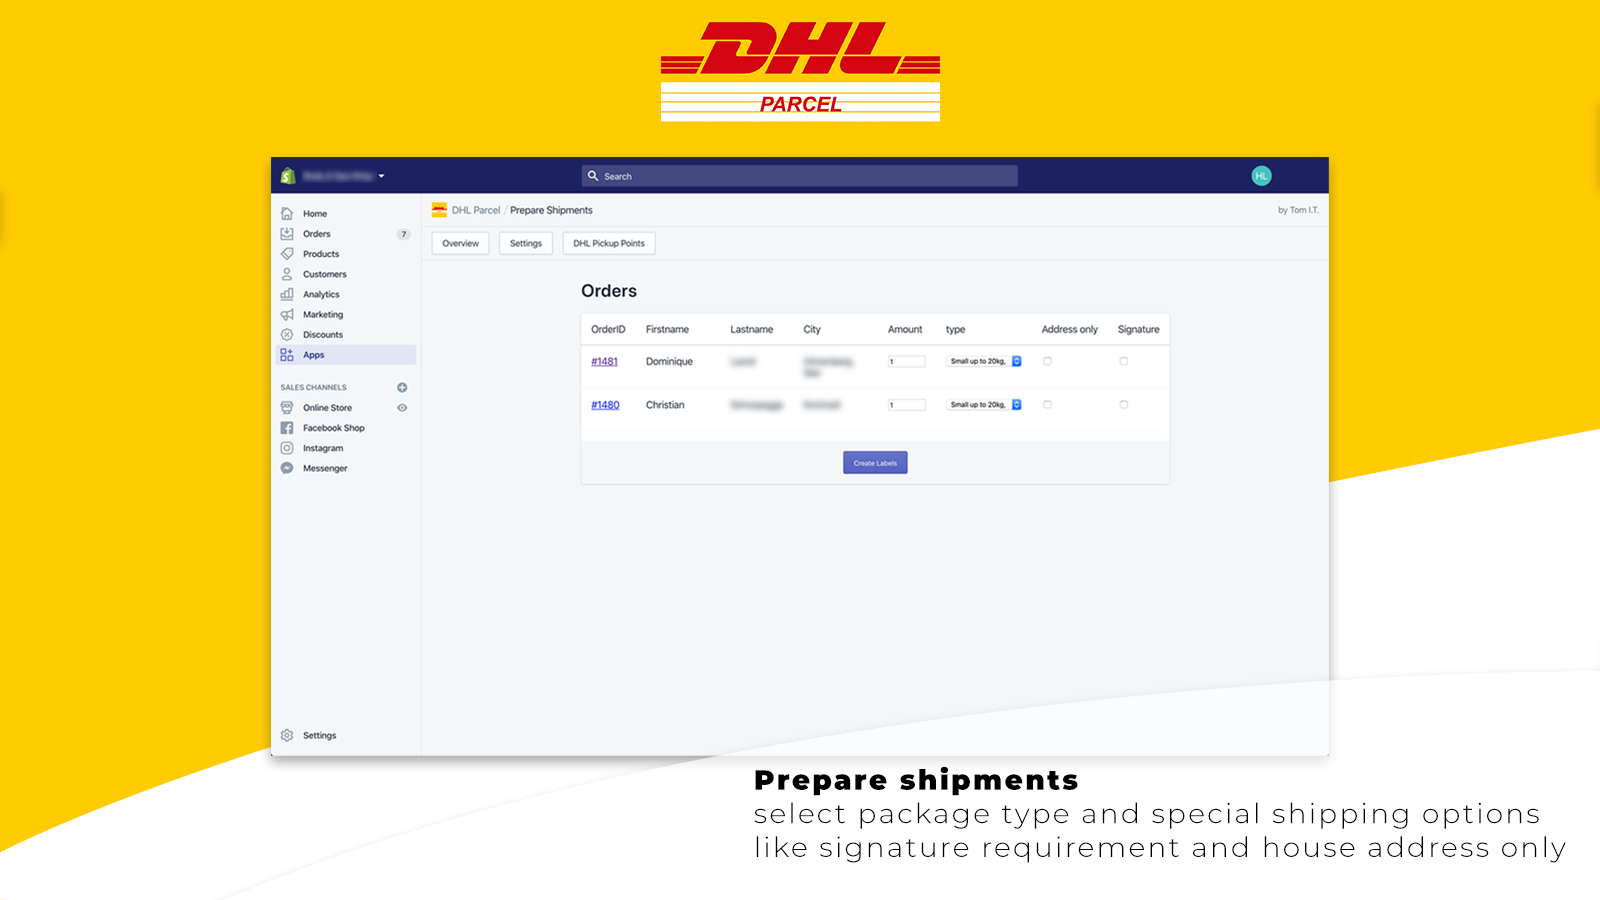 Prepare shipments, select your options and create labels